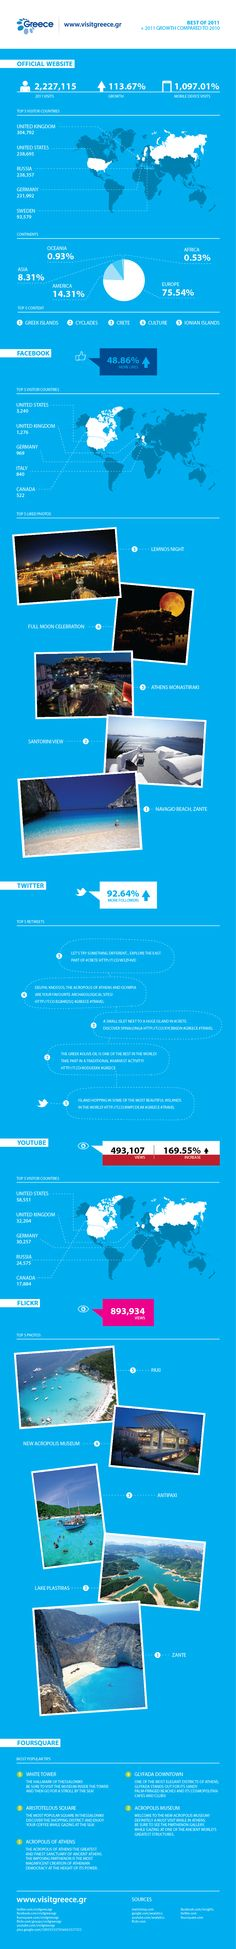 The Best of 2011! Visit Greece infographic!